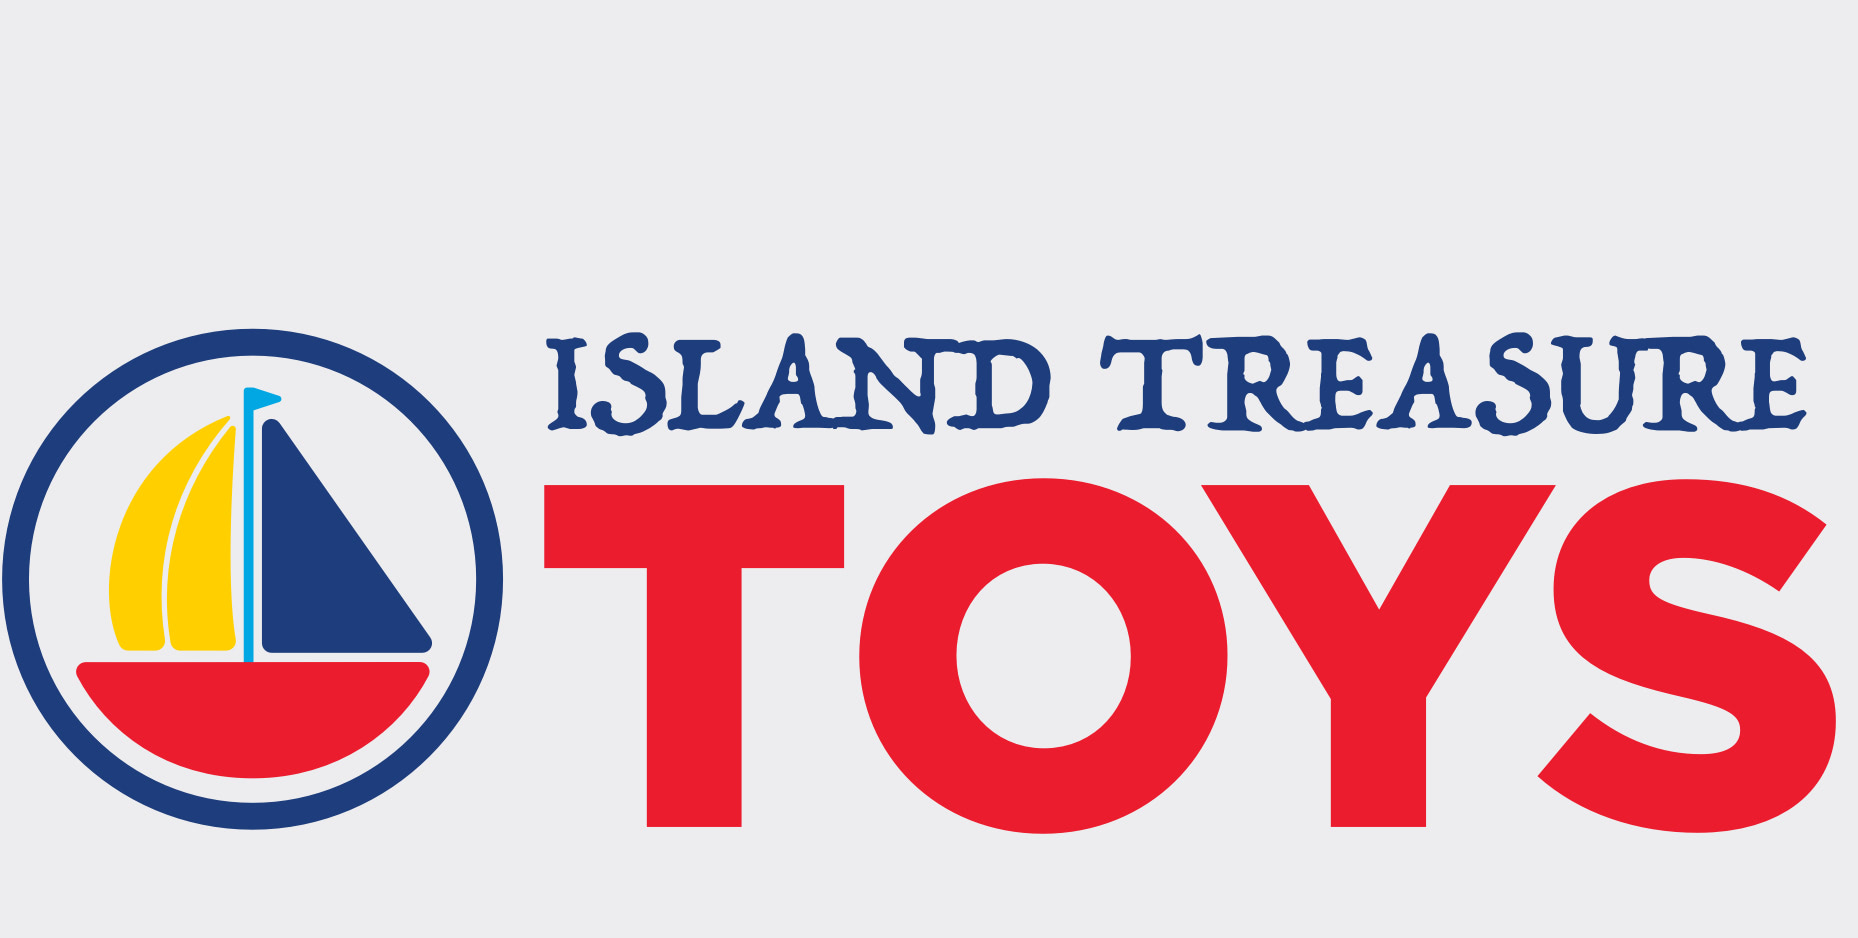 Island Treasure Toys logo with a logo mark of a colorful sailboat within a circle next to the type with 'Island Treasure' in a handwritten pirate-themed font in small text above the large text 'Toys'.